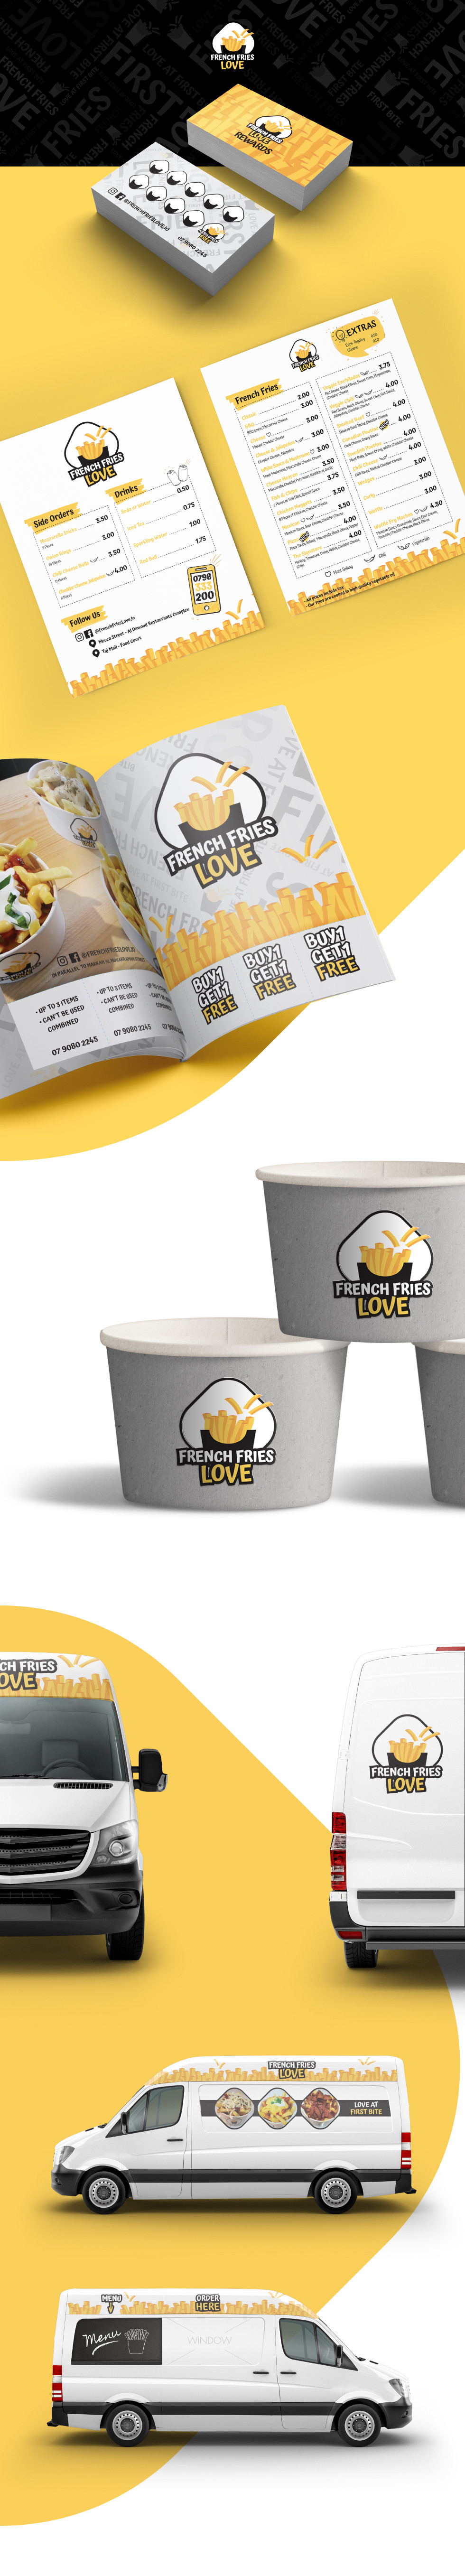 French Fries Love Branding and Designs